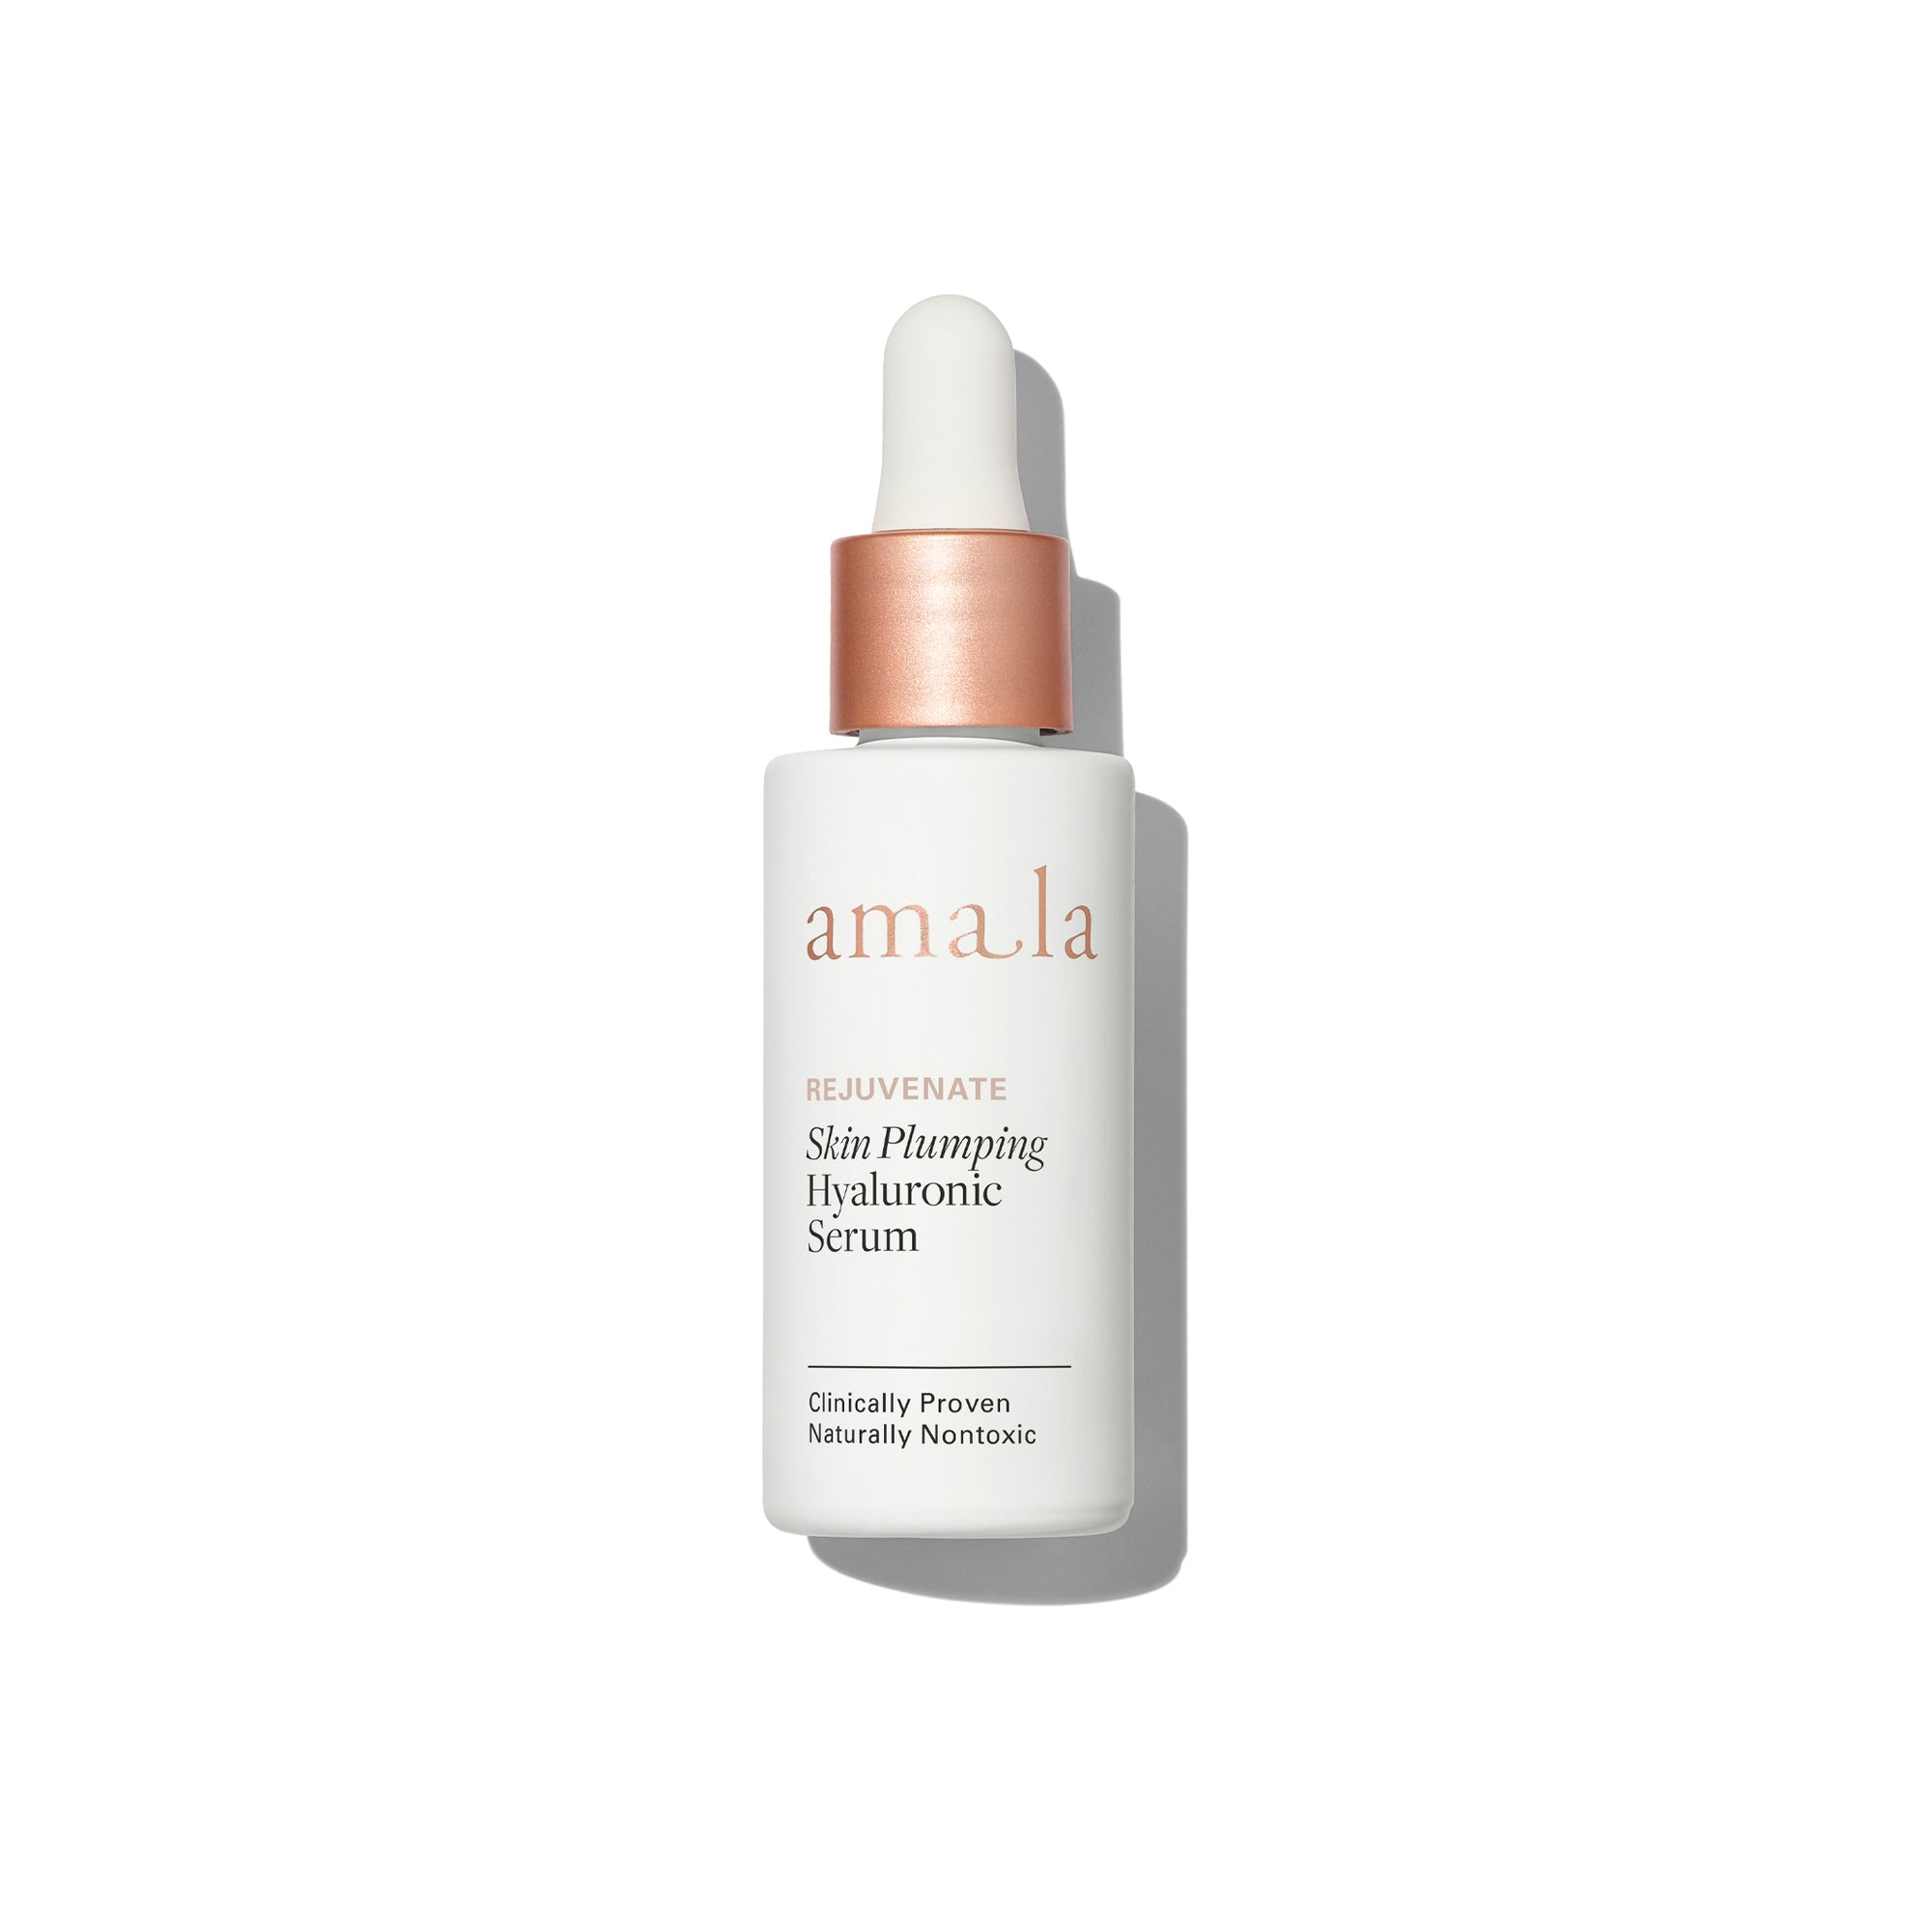 Skin Plumping Hyaluronic Serum by Amala